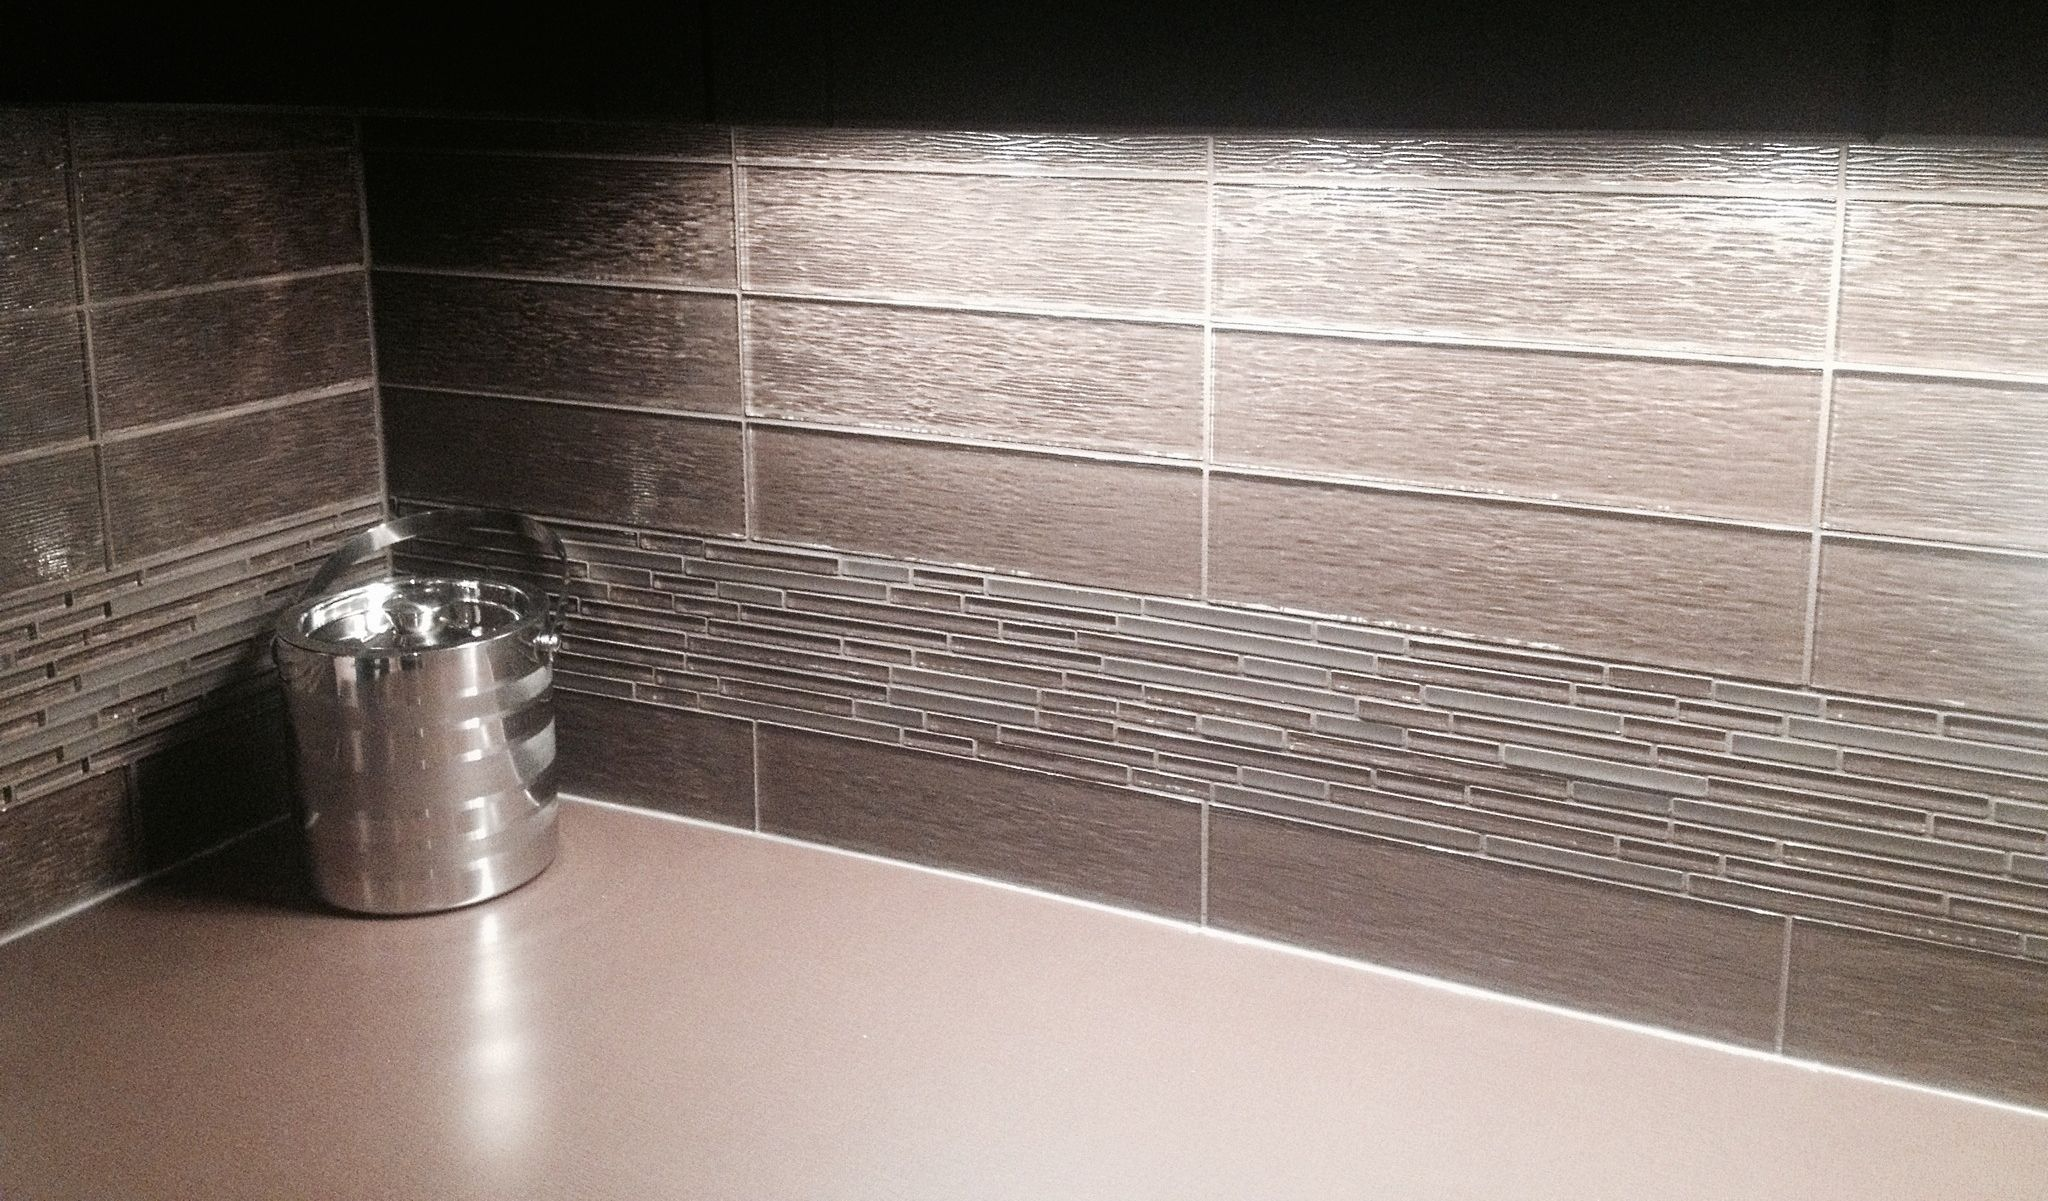 Using a band of mosaic tiles in